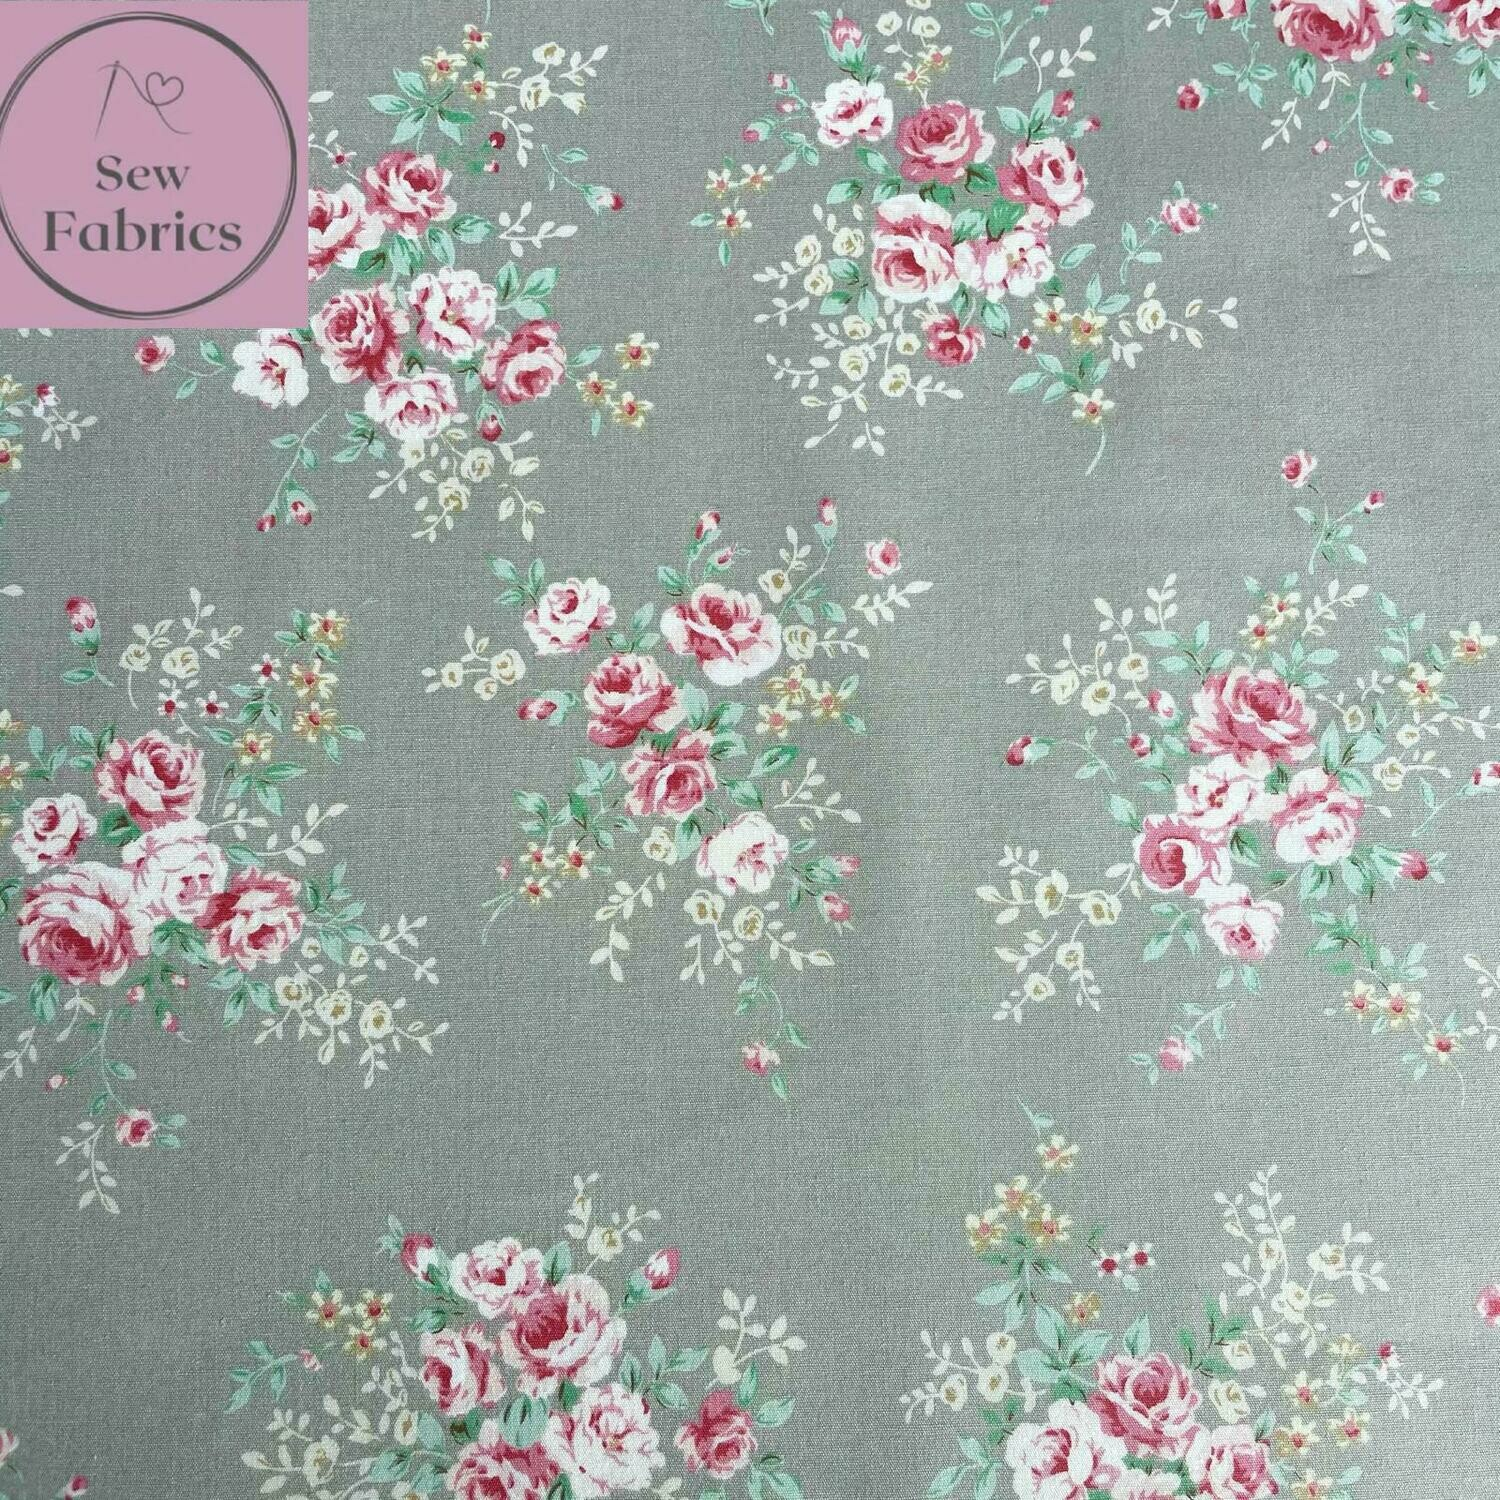 Rose & Hubble Silver Floral Fabric 100% Cotton Poplin Vintage Flower Material